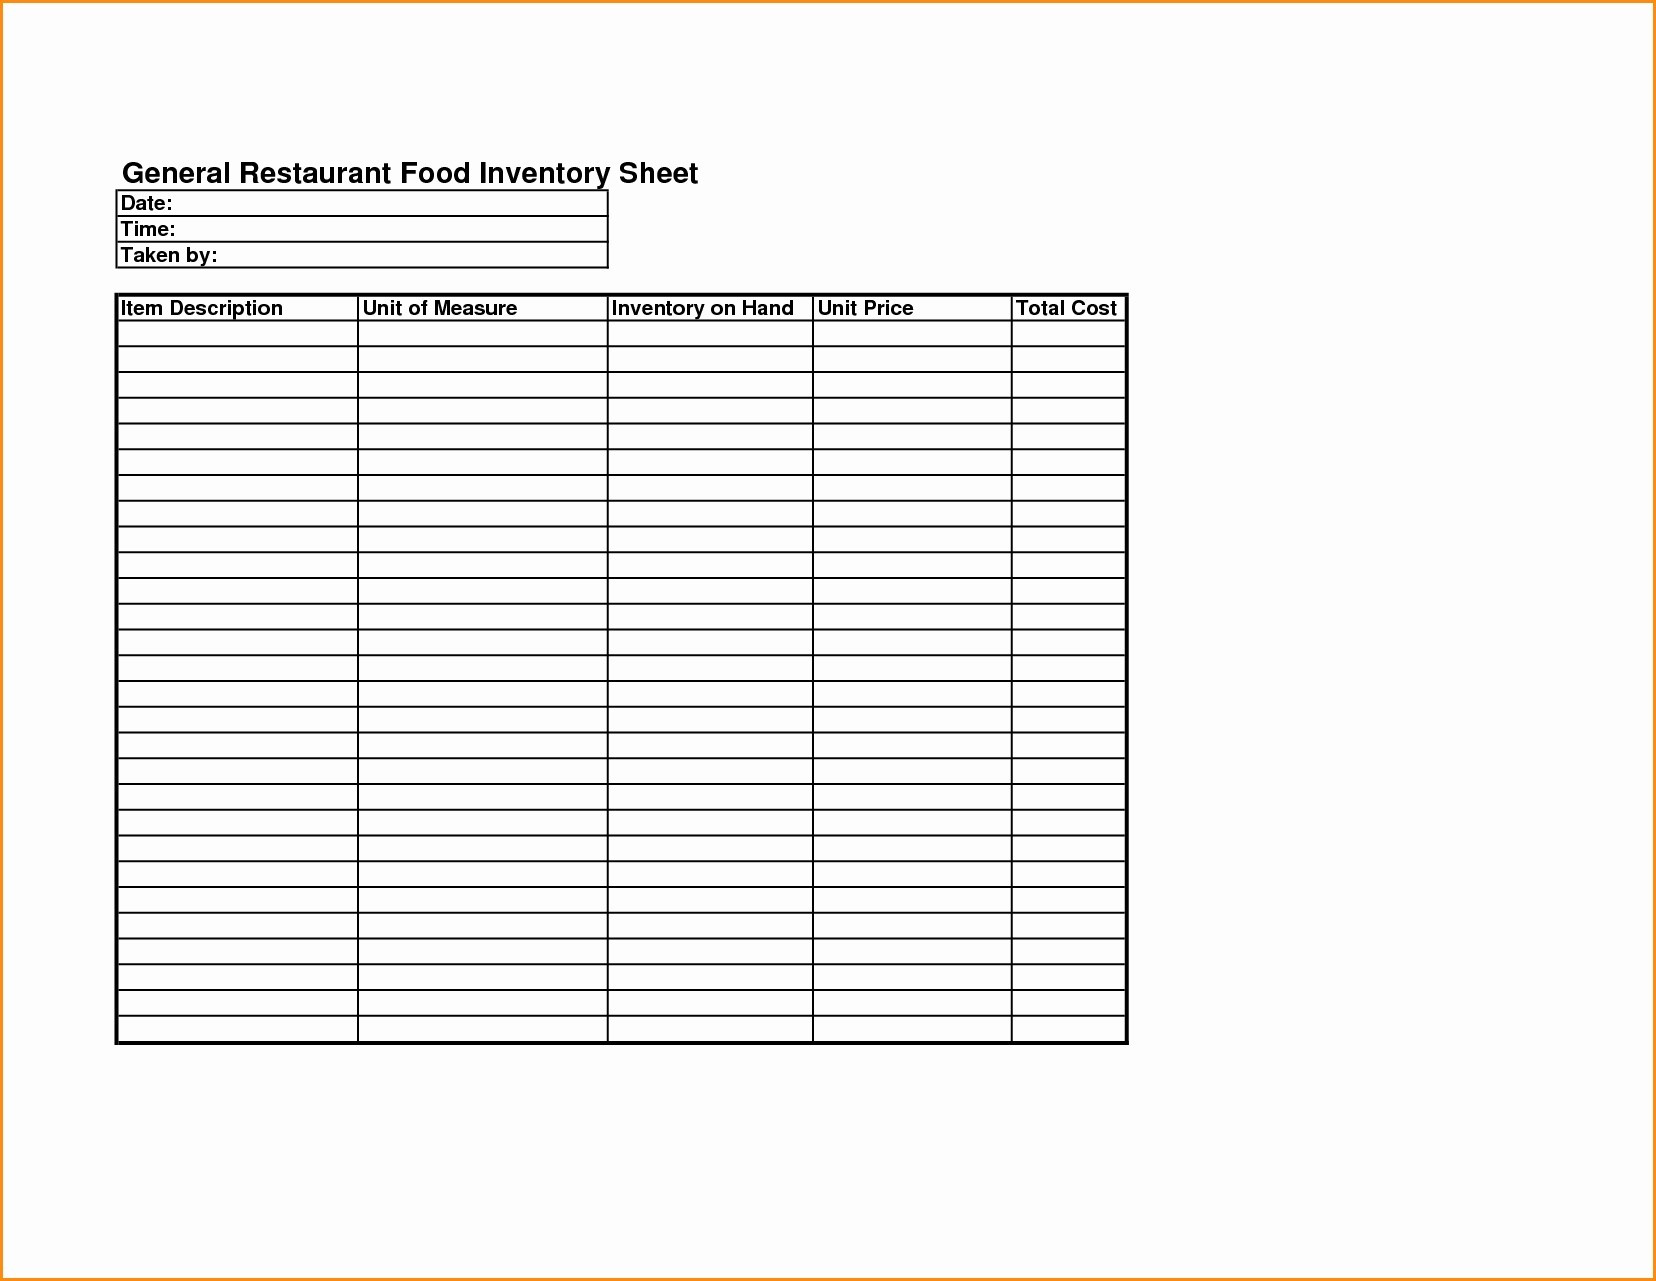 Home Food Inventory Spreadsheet Within Food Cost Spreadsheet Inspirational 20 Elegant Home Food Inventory